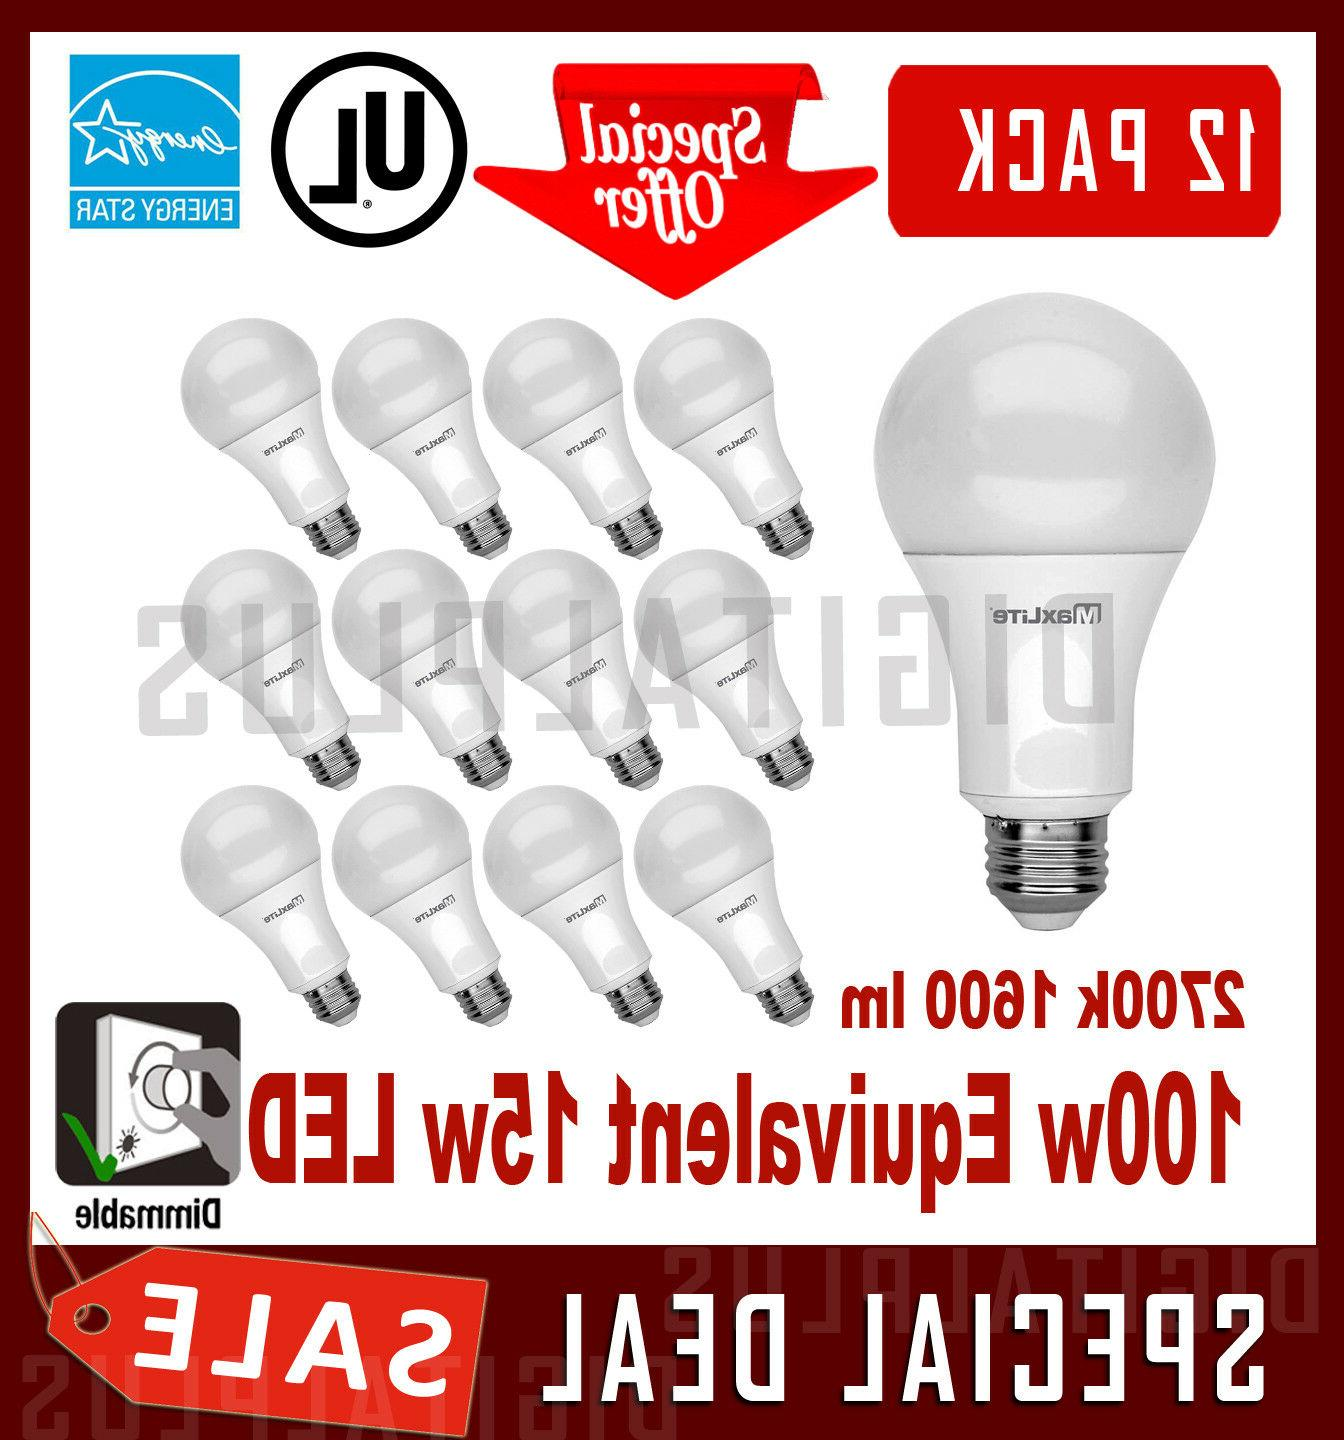 12 led light bulbs 15w 1600 lumens